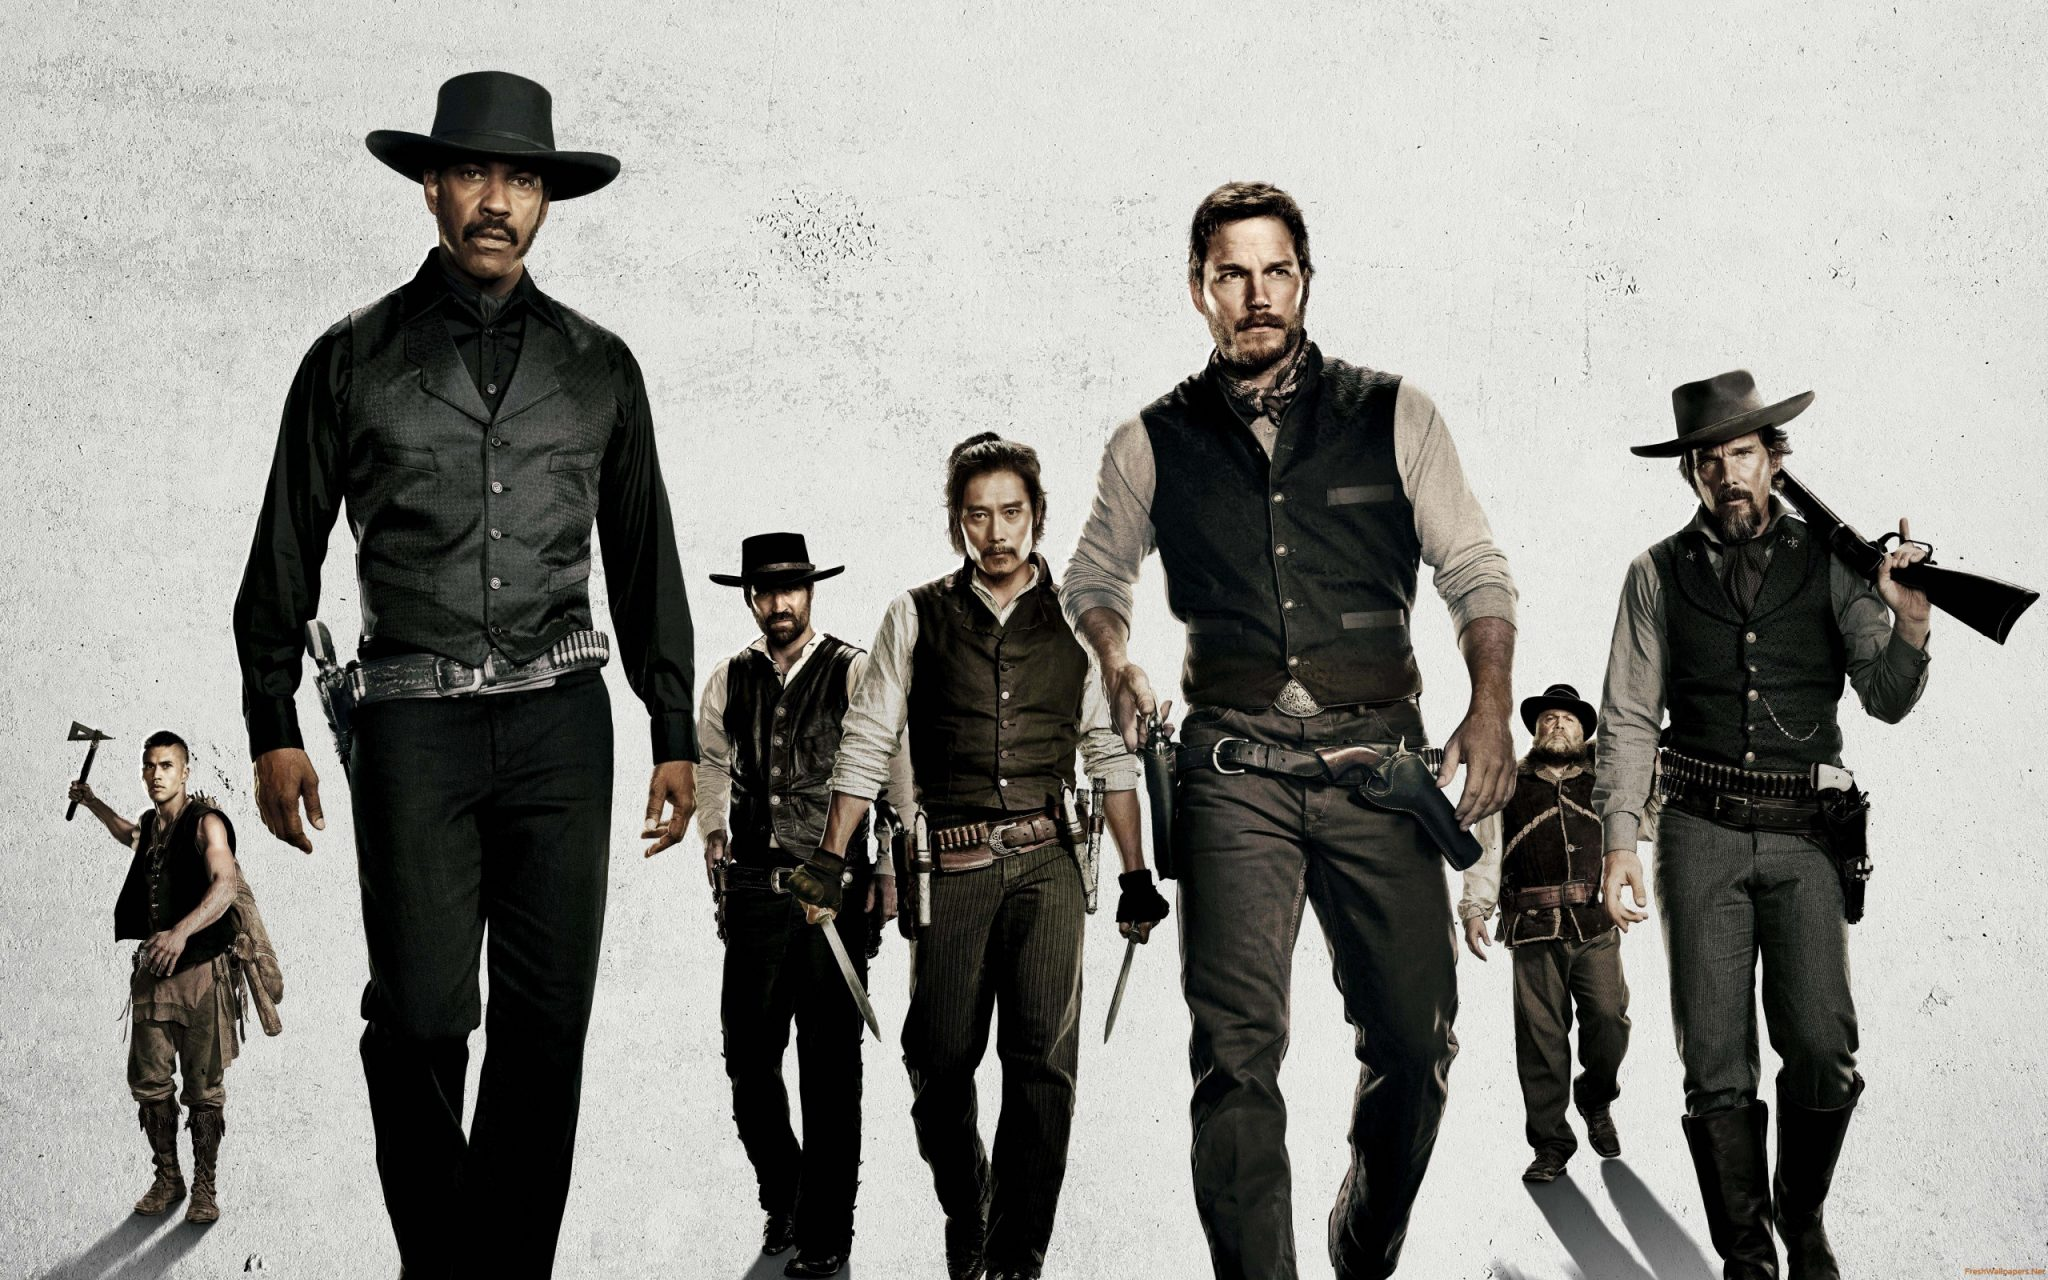 Review: 'The Magnificent Seven' Is Enjoyably Average